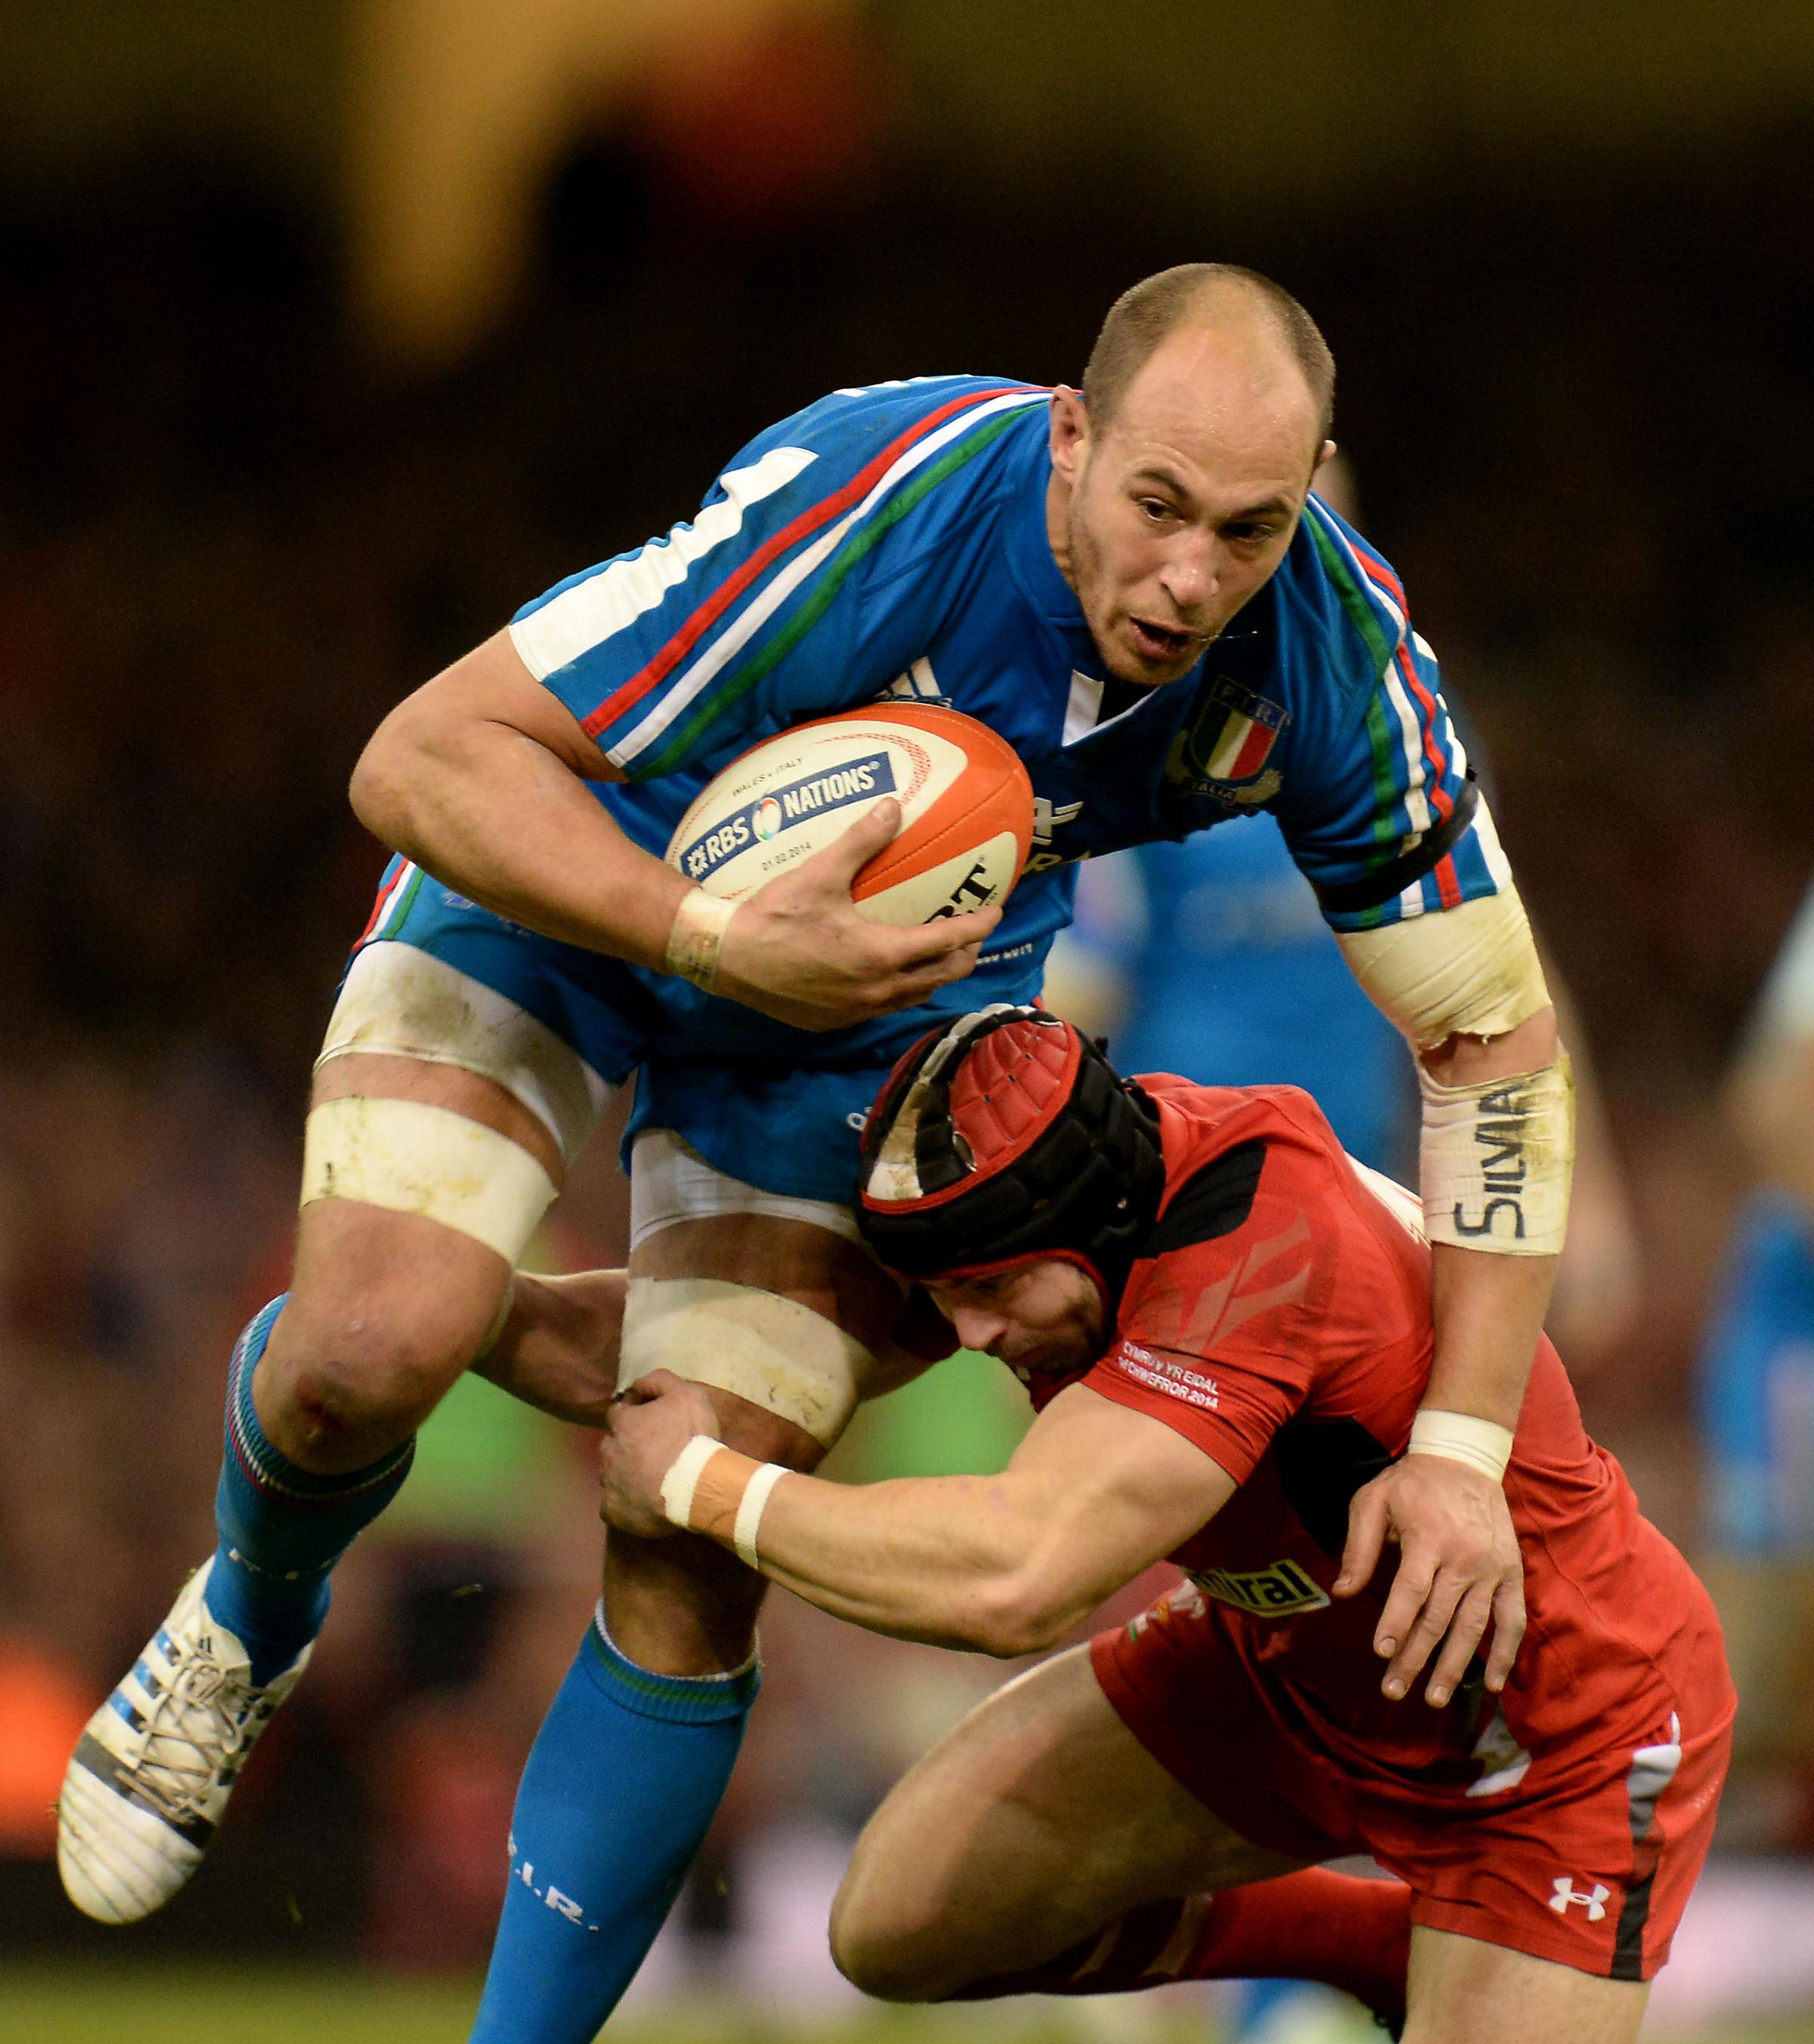 Italy's Sergio Parisse is tackled by Wales' Leigh Halfpenny (right) during the RBS 6 Nations match at the Millennium Stadium, Cardiff. PRESS ASSOCIATION Photo. Picture date: Saturday February 1, 2014. See PA story RUGBYU Wales. Photo credit should